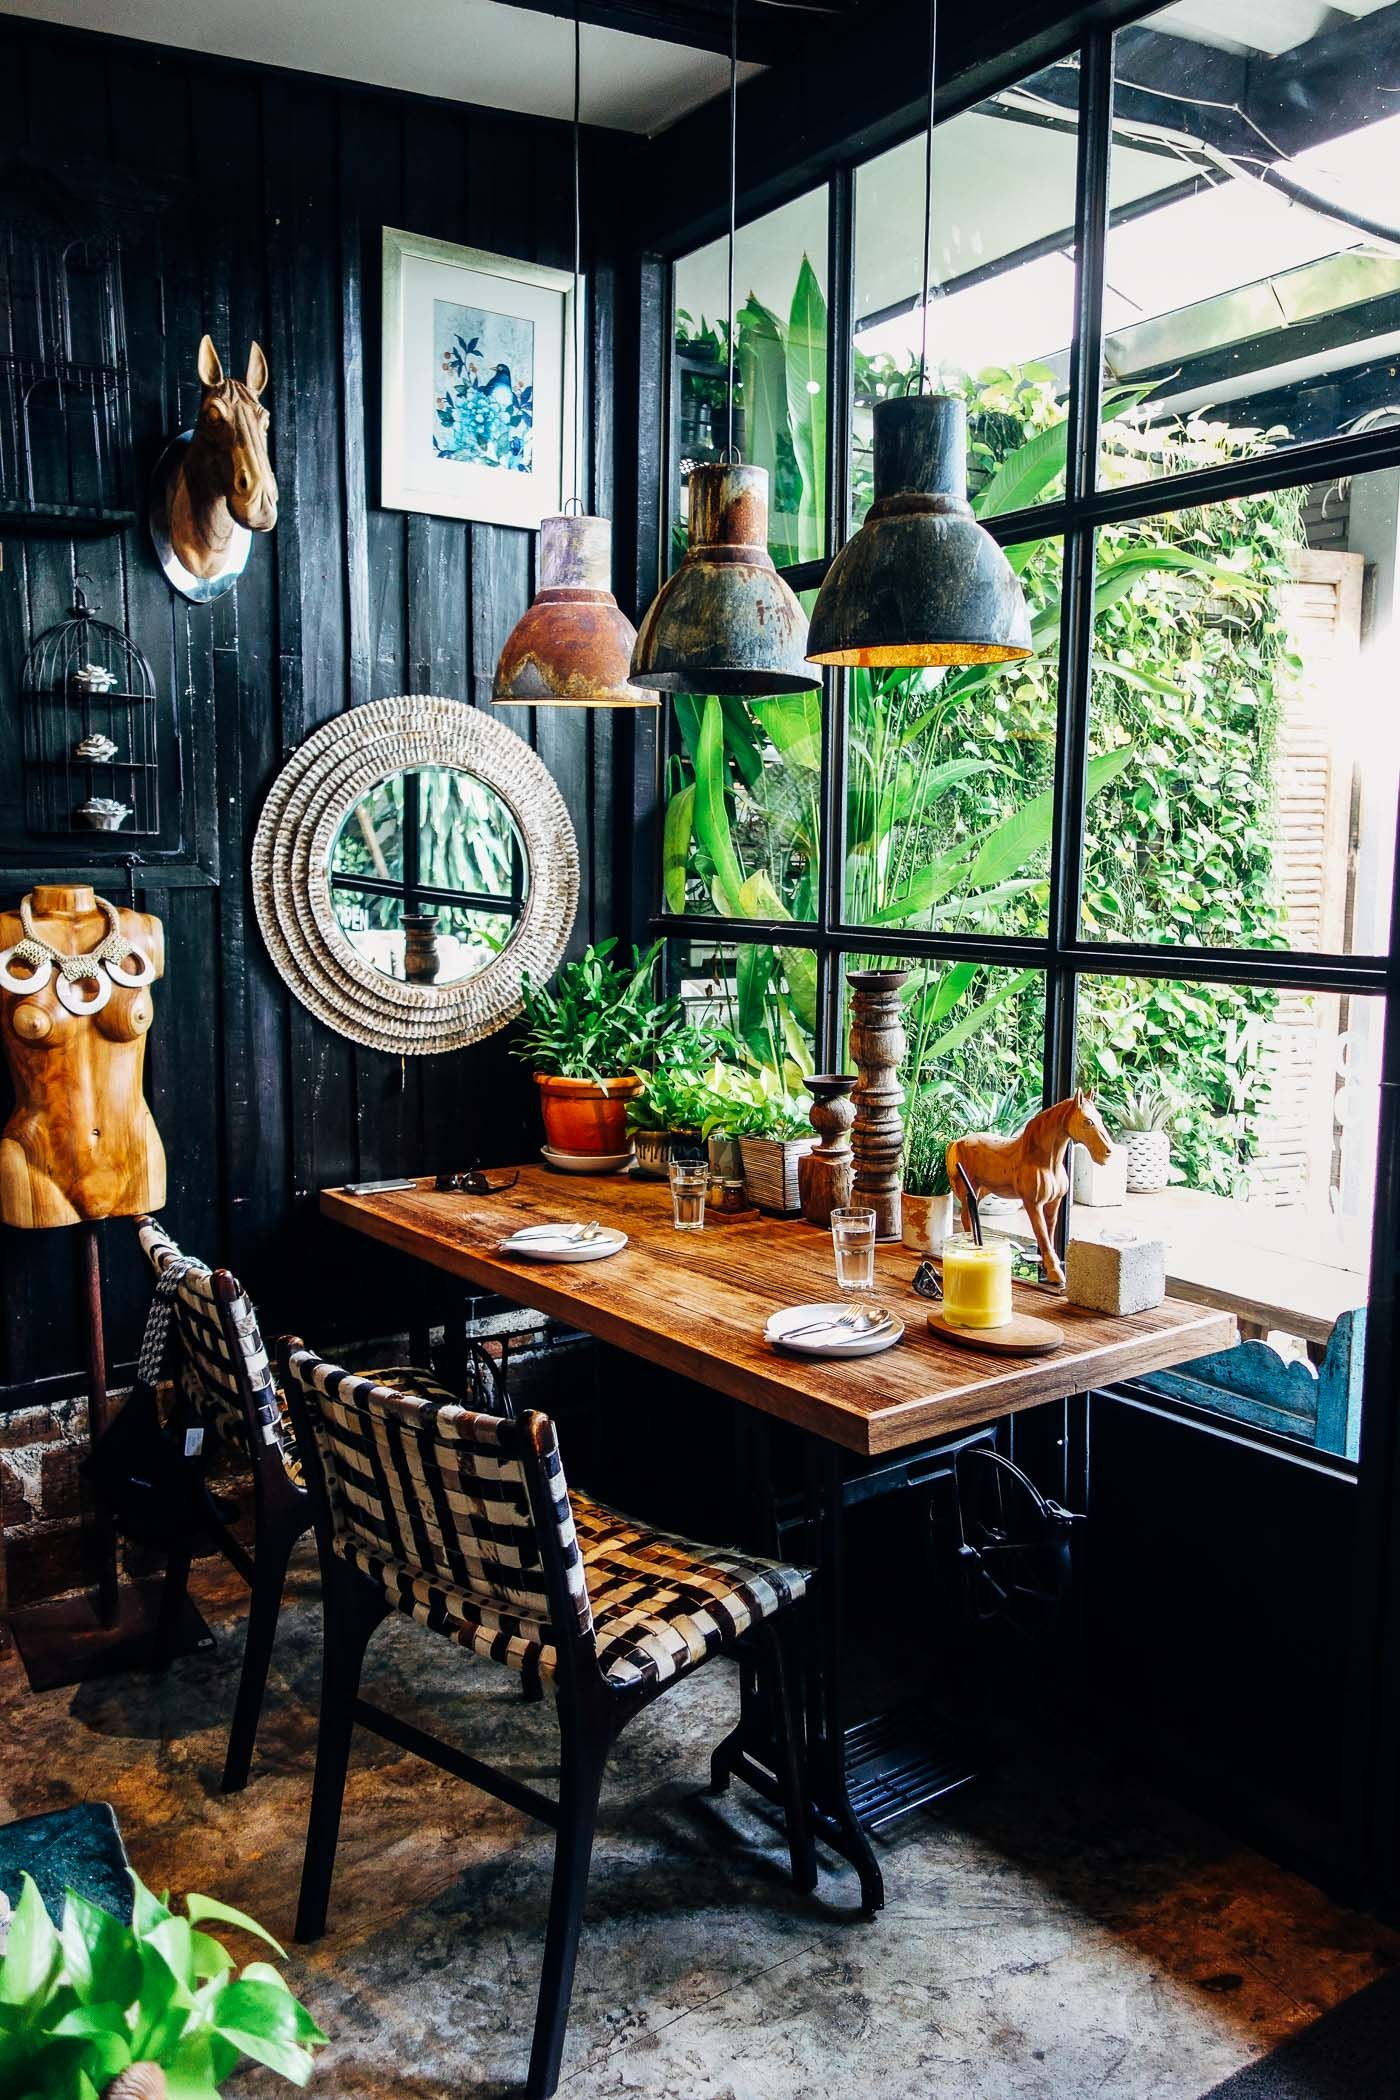 abac3d3a50 Woo Cafe Chiang Mai Thailand